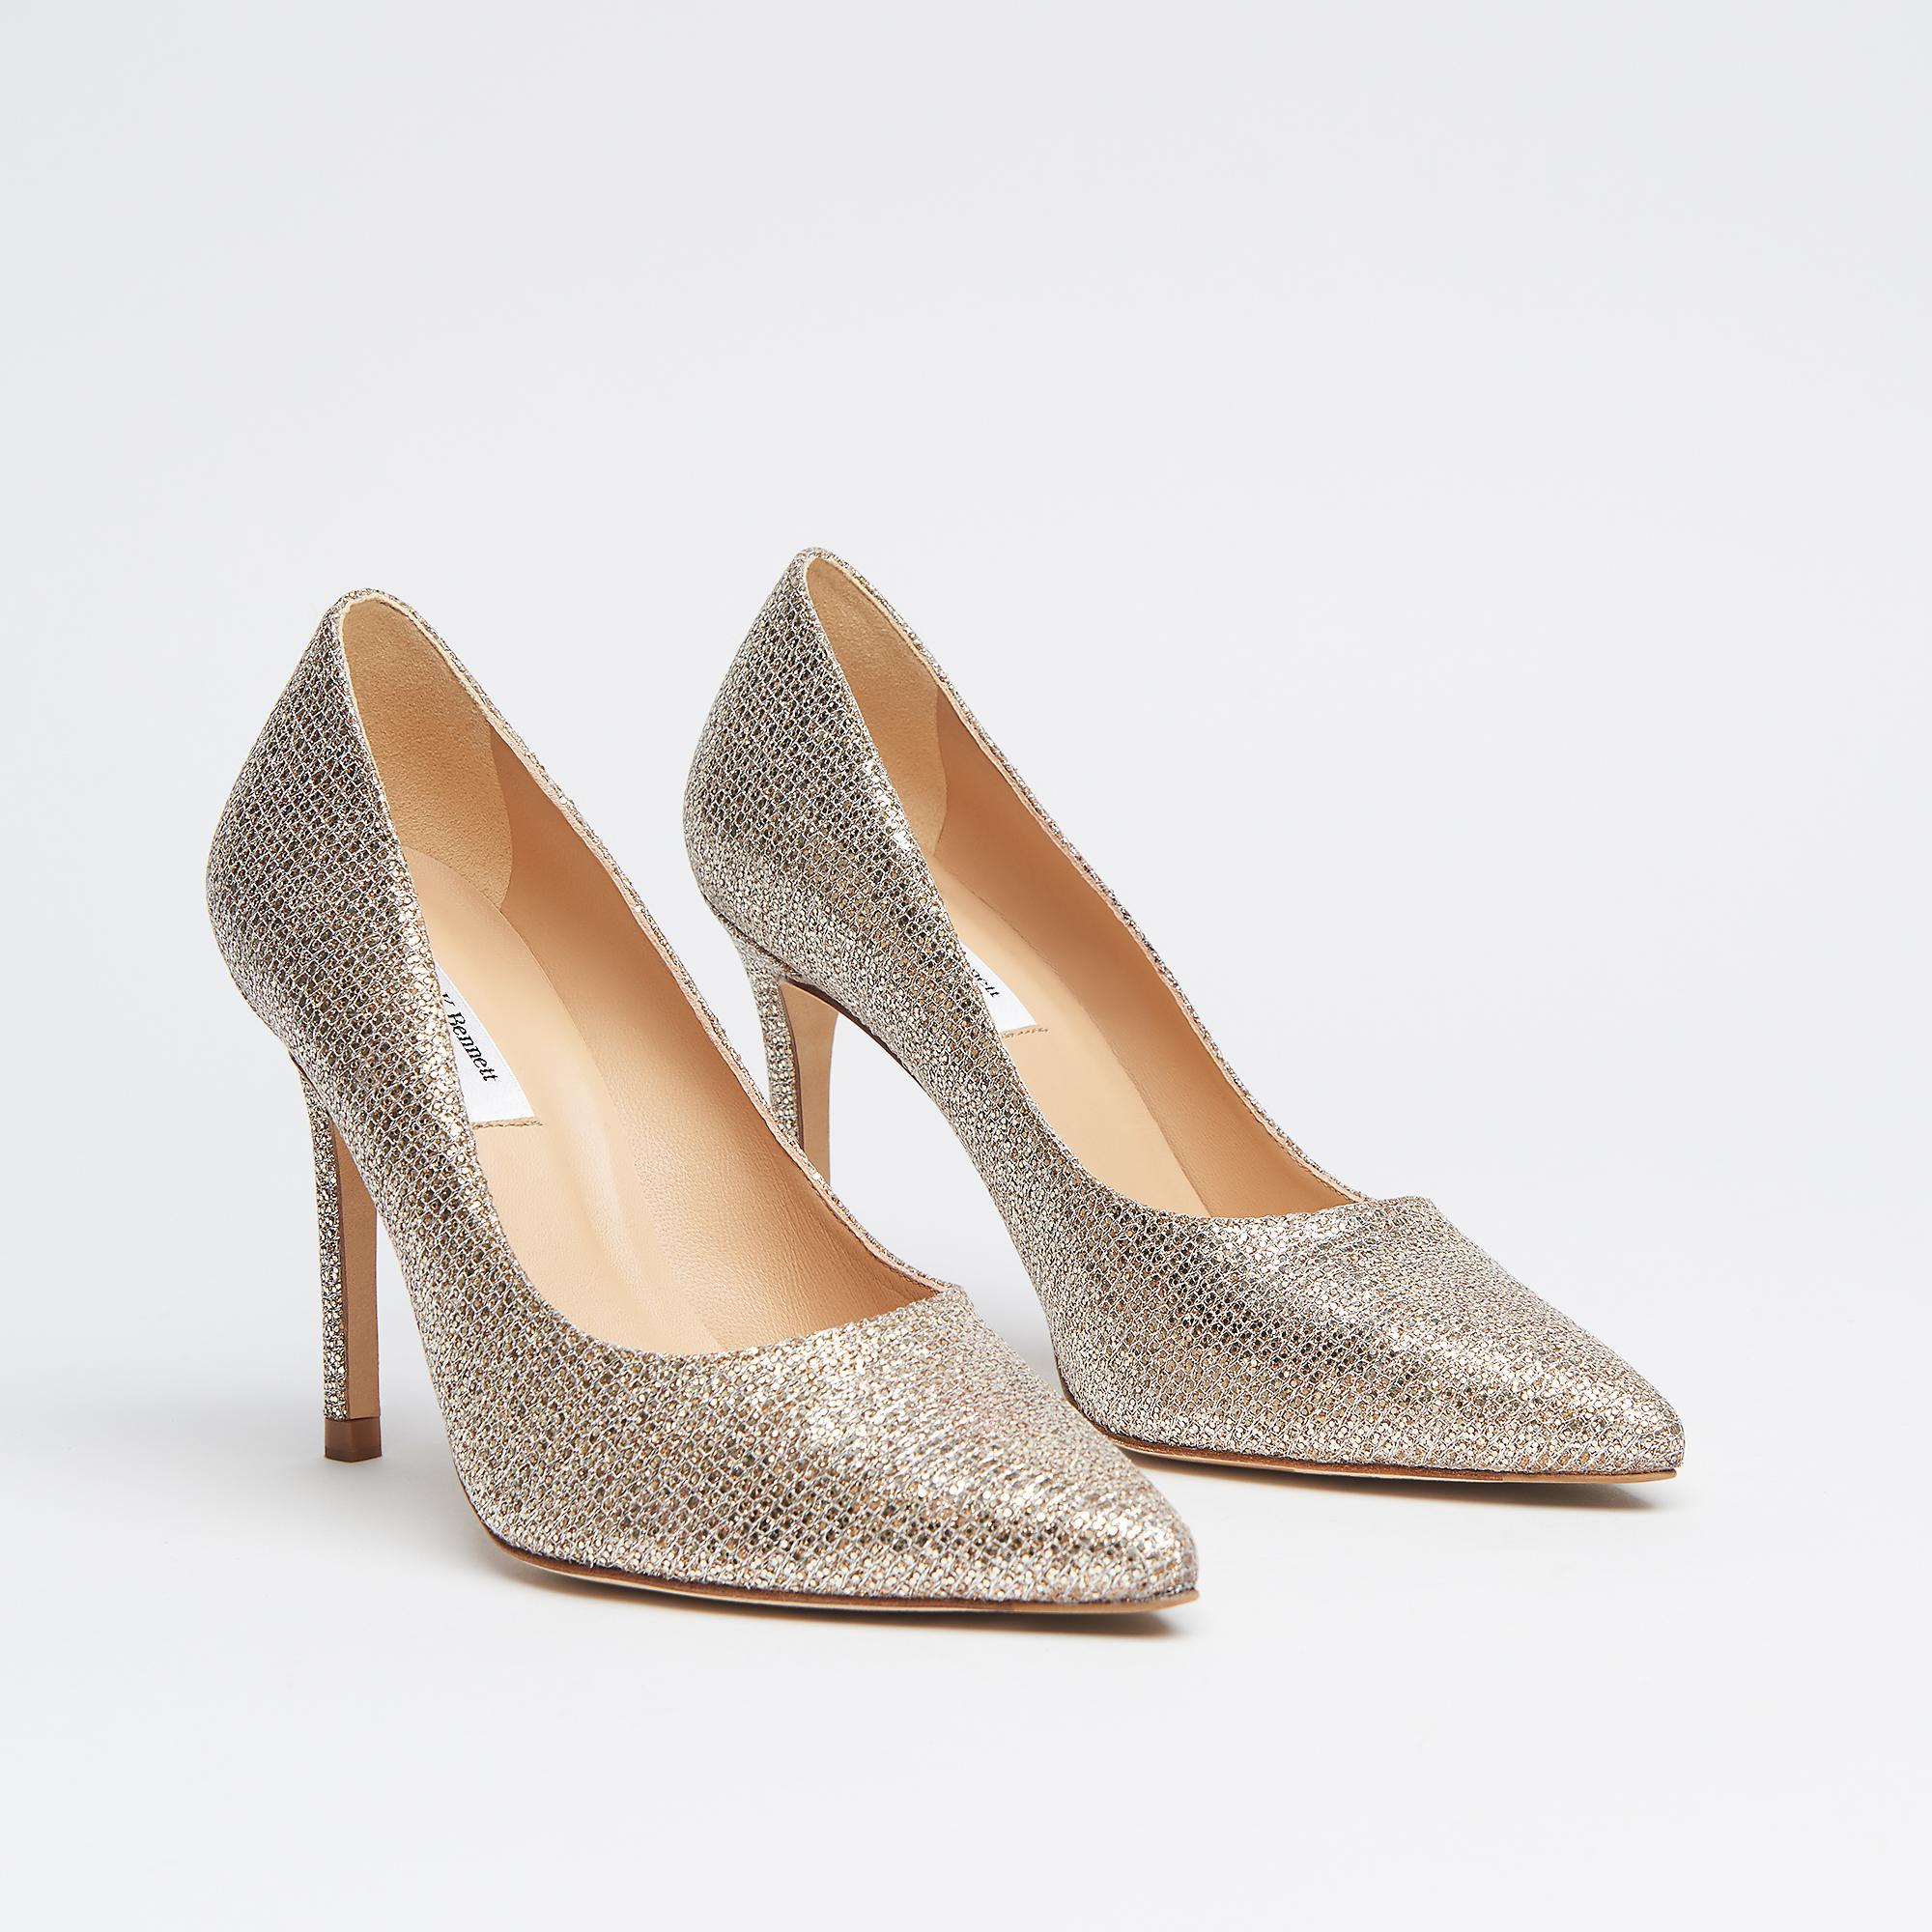 1ede6c819ab ... Fern Champagne Lurex Pointed Toe Courts - Lyst. View fullscreen